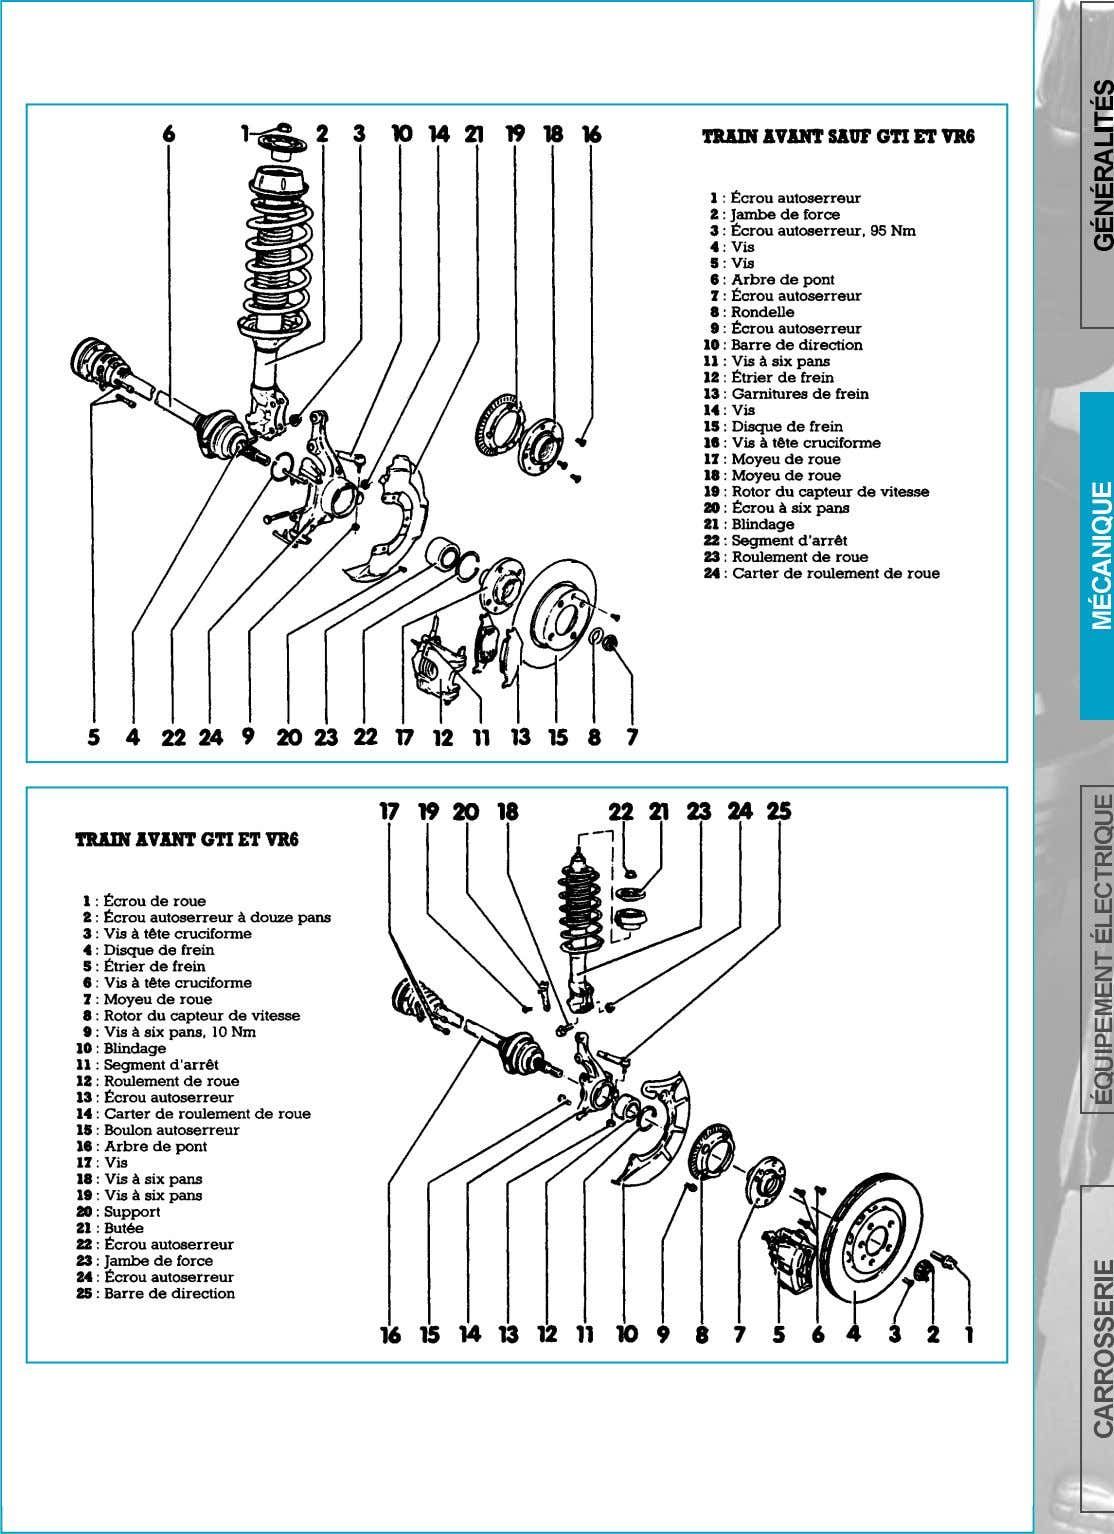 SUSPENSION-TRAIN AVANT   page 149